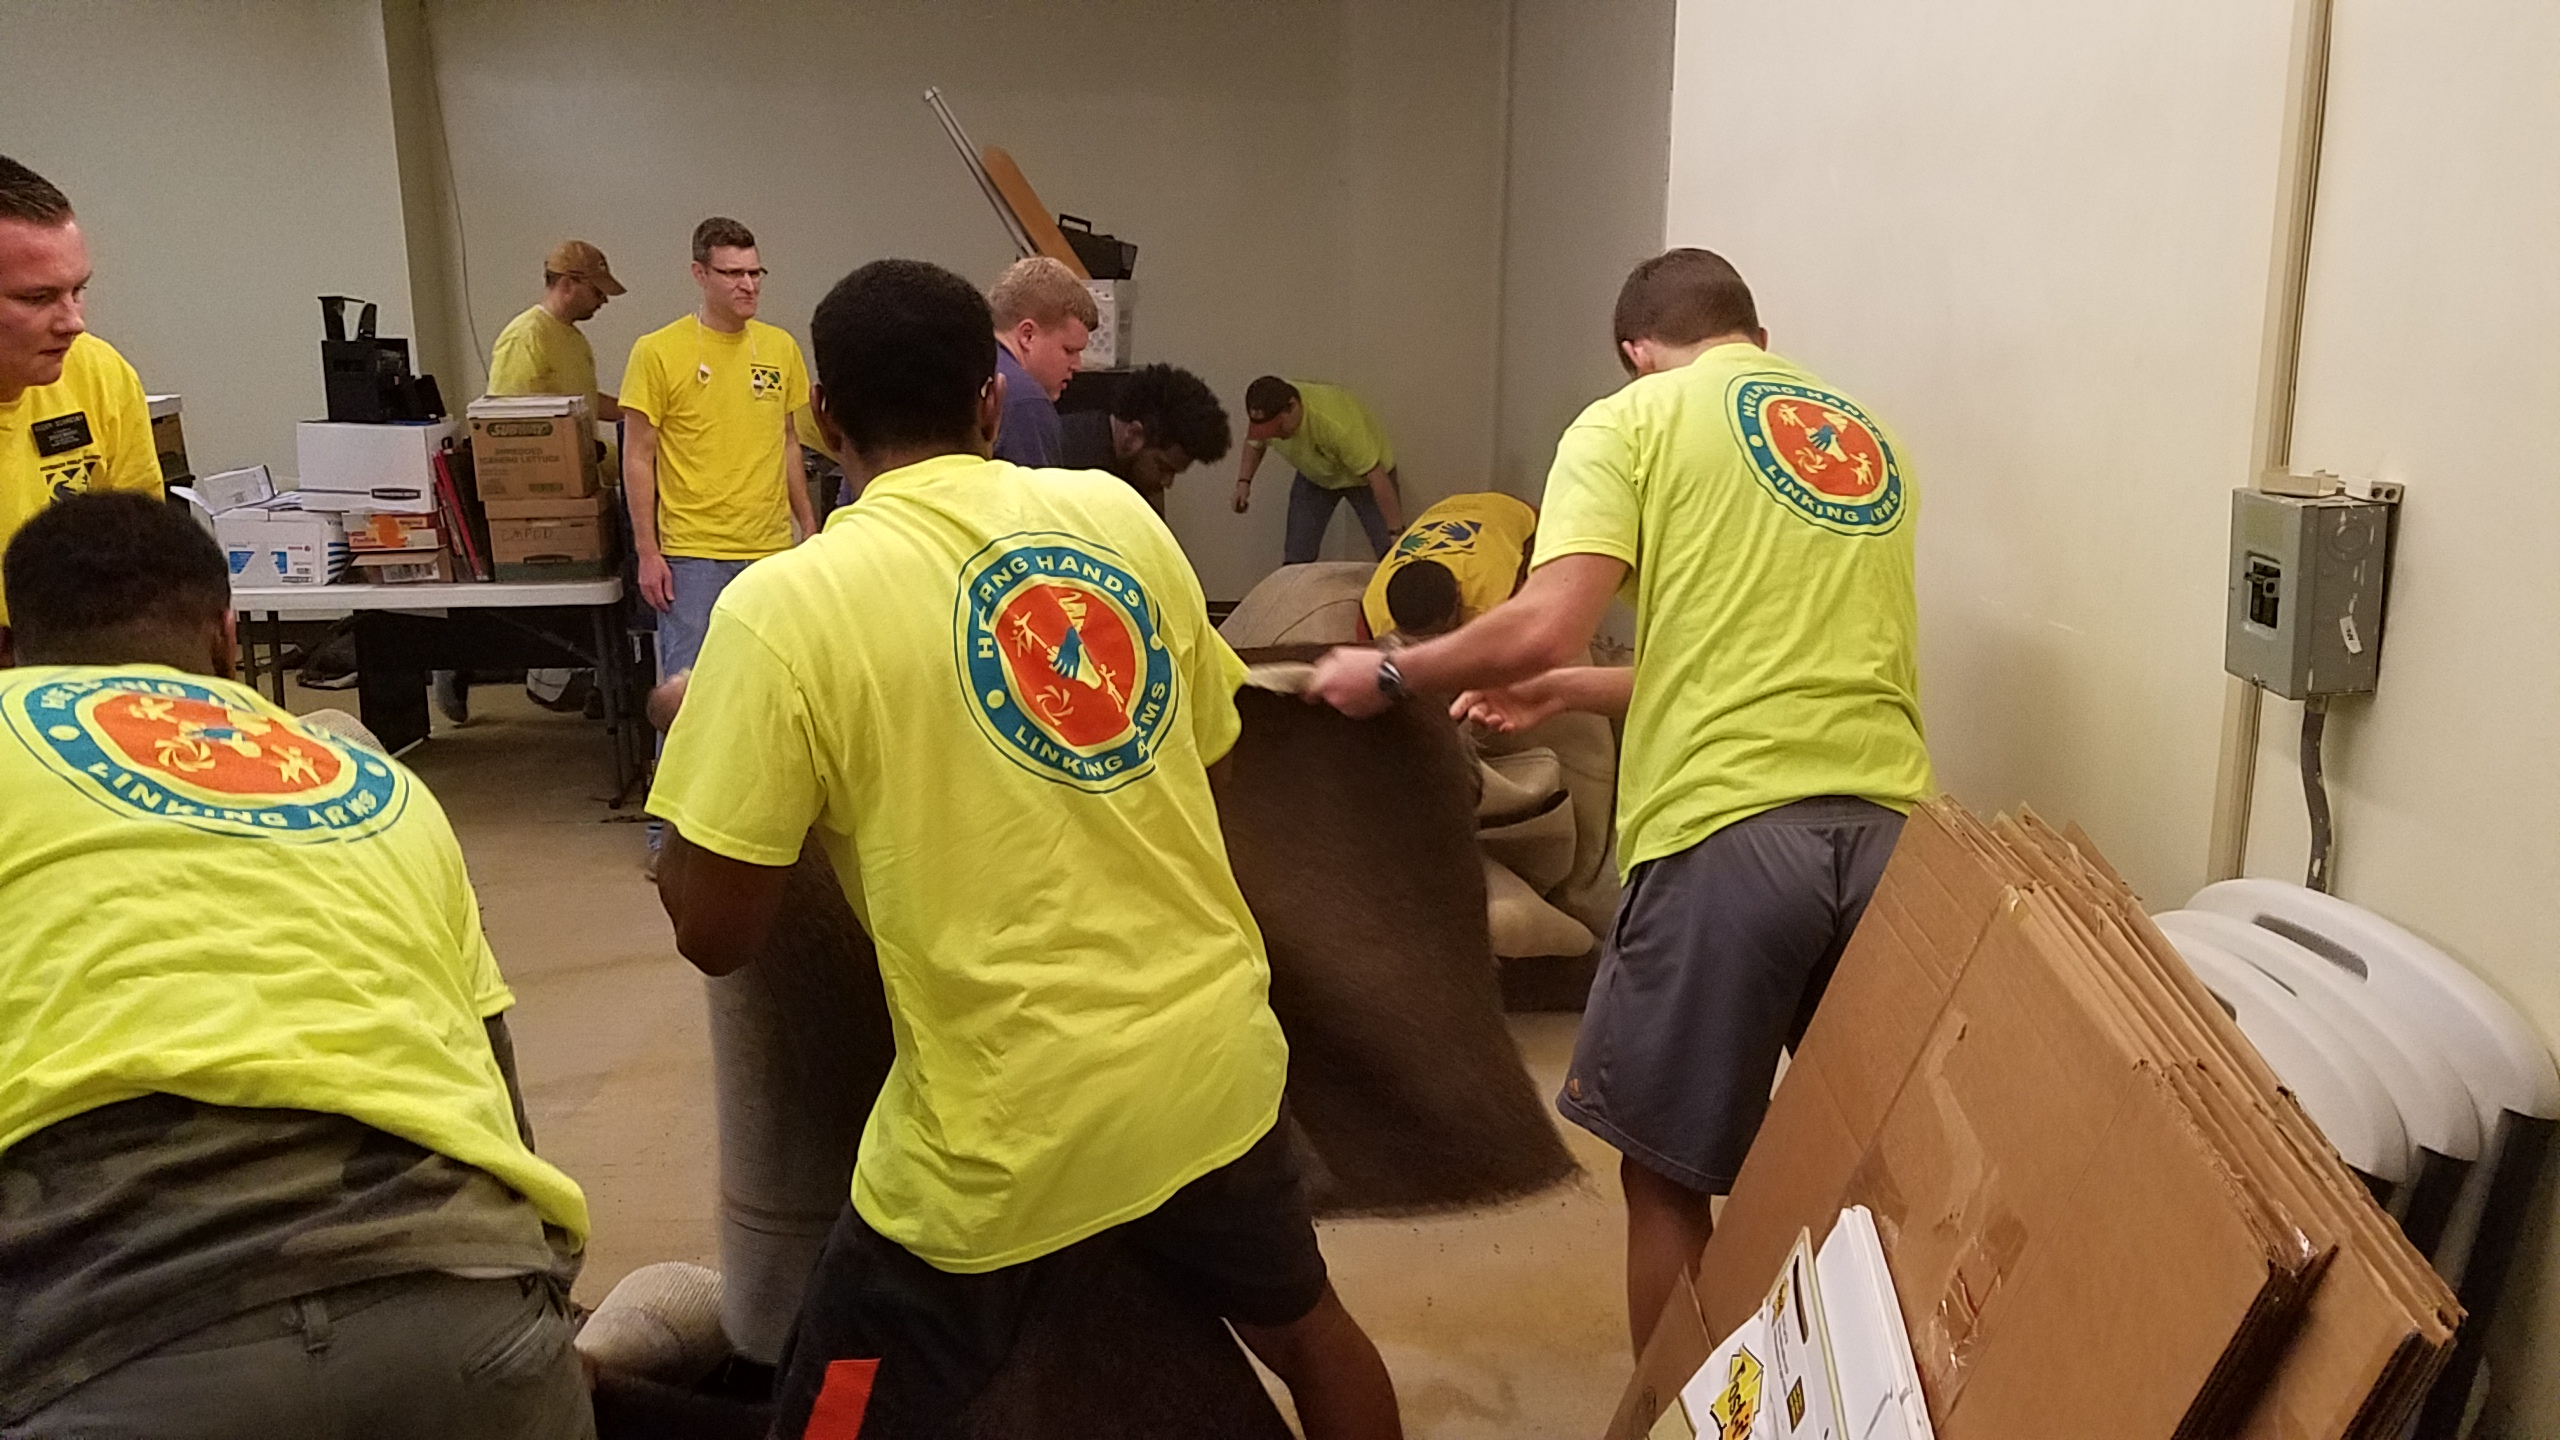 Full-time LDS missionaries help refurbishment NAACP offices in Jackson, Mississippi, in February 2018. They worked shoulder-to-shouder with local young single adult members.